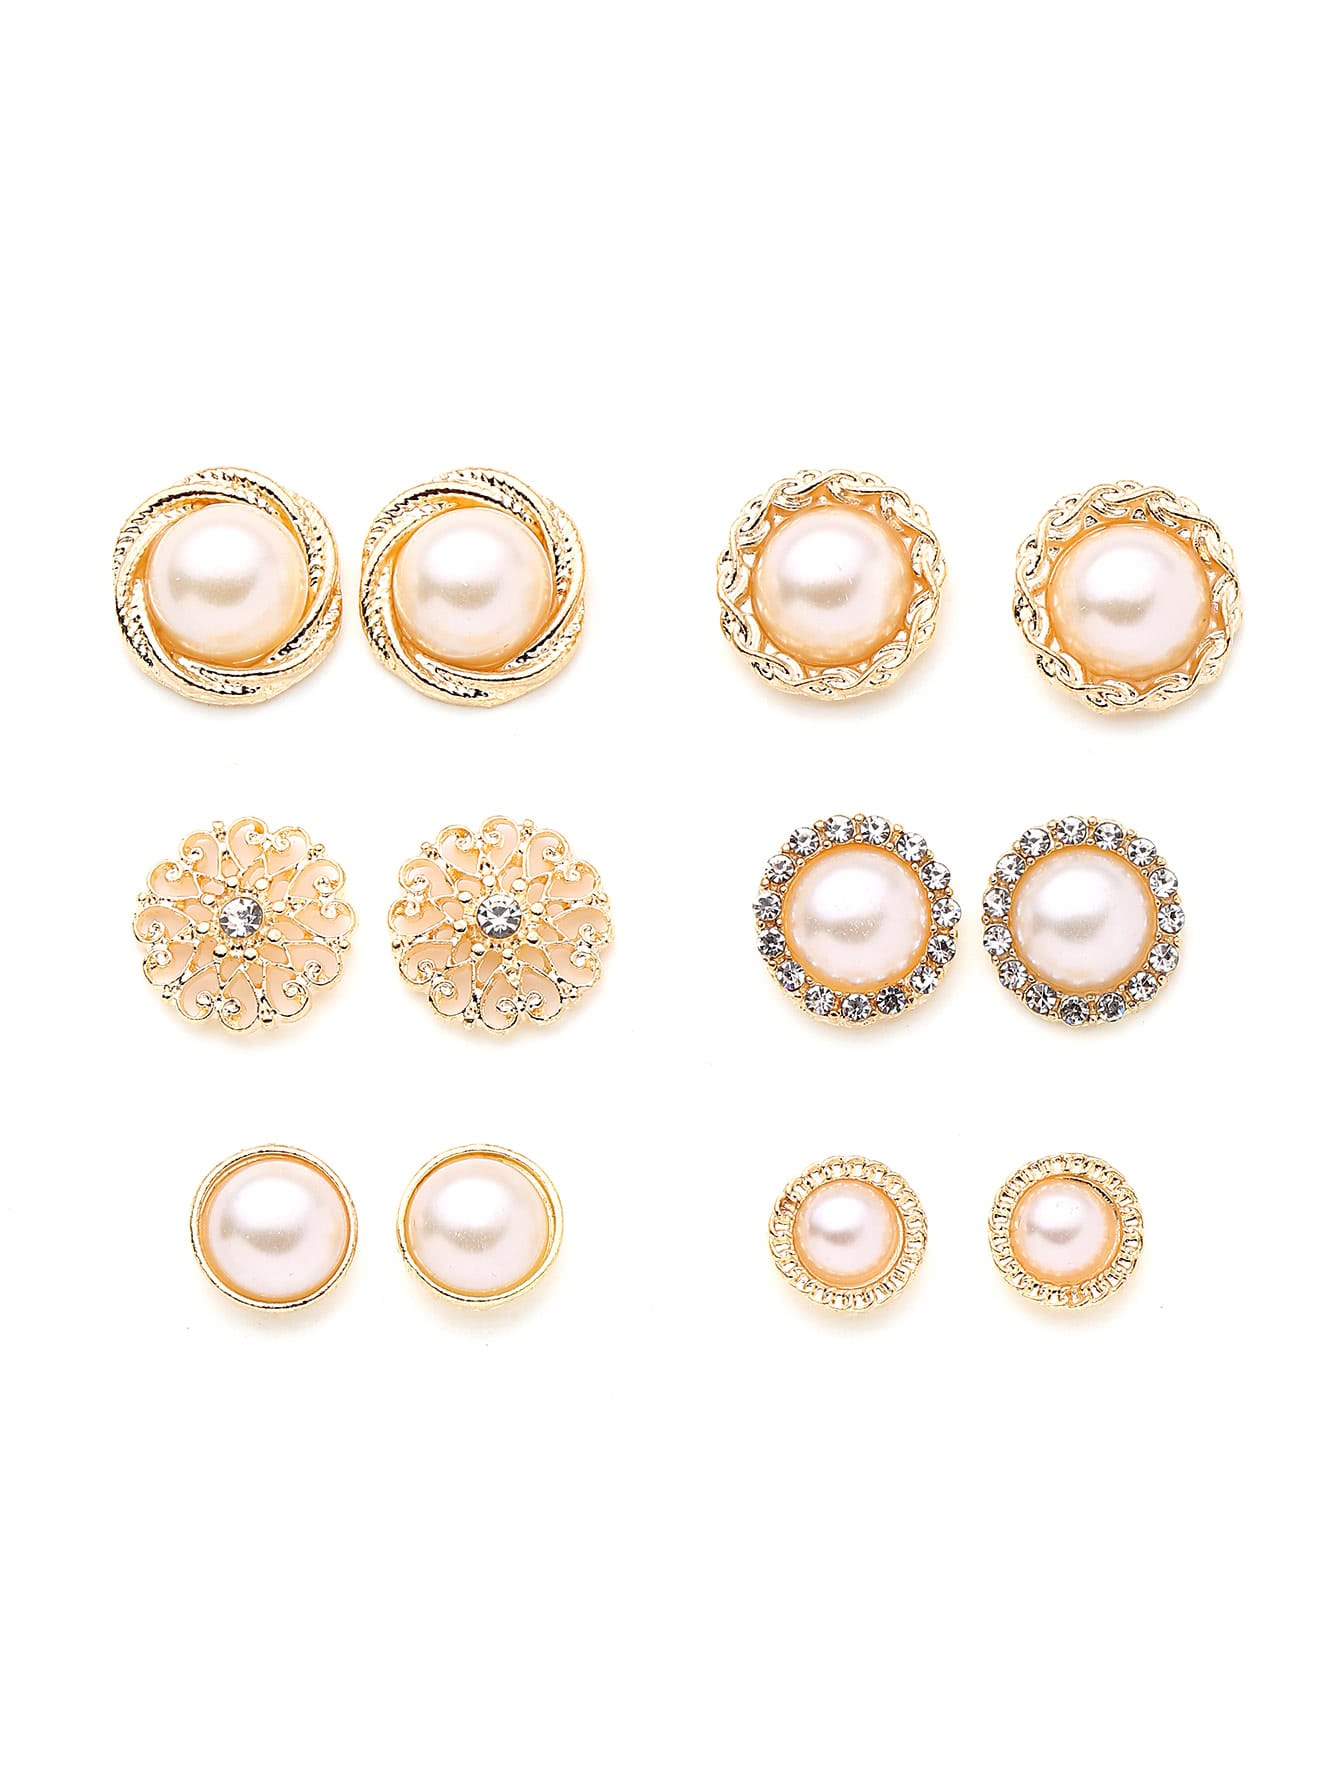 Faux Pearl And Rhinestone Design Stud Earring Set free shipping 10pcs max995esd